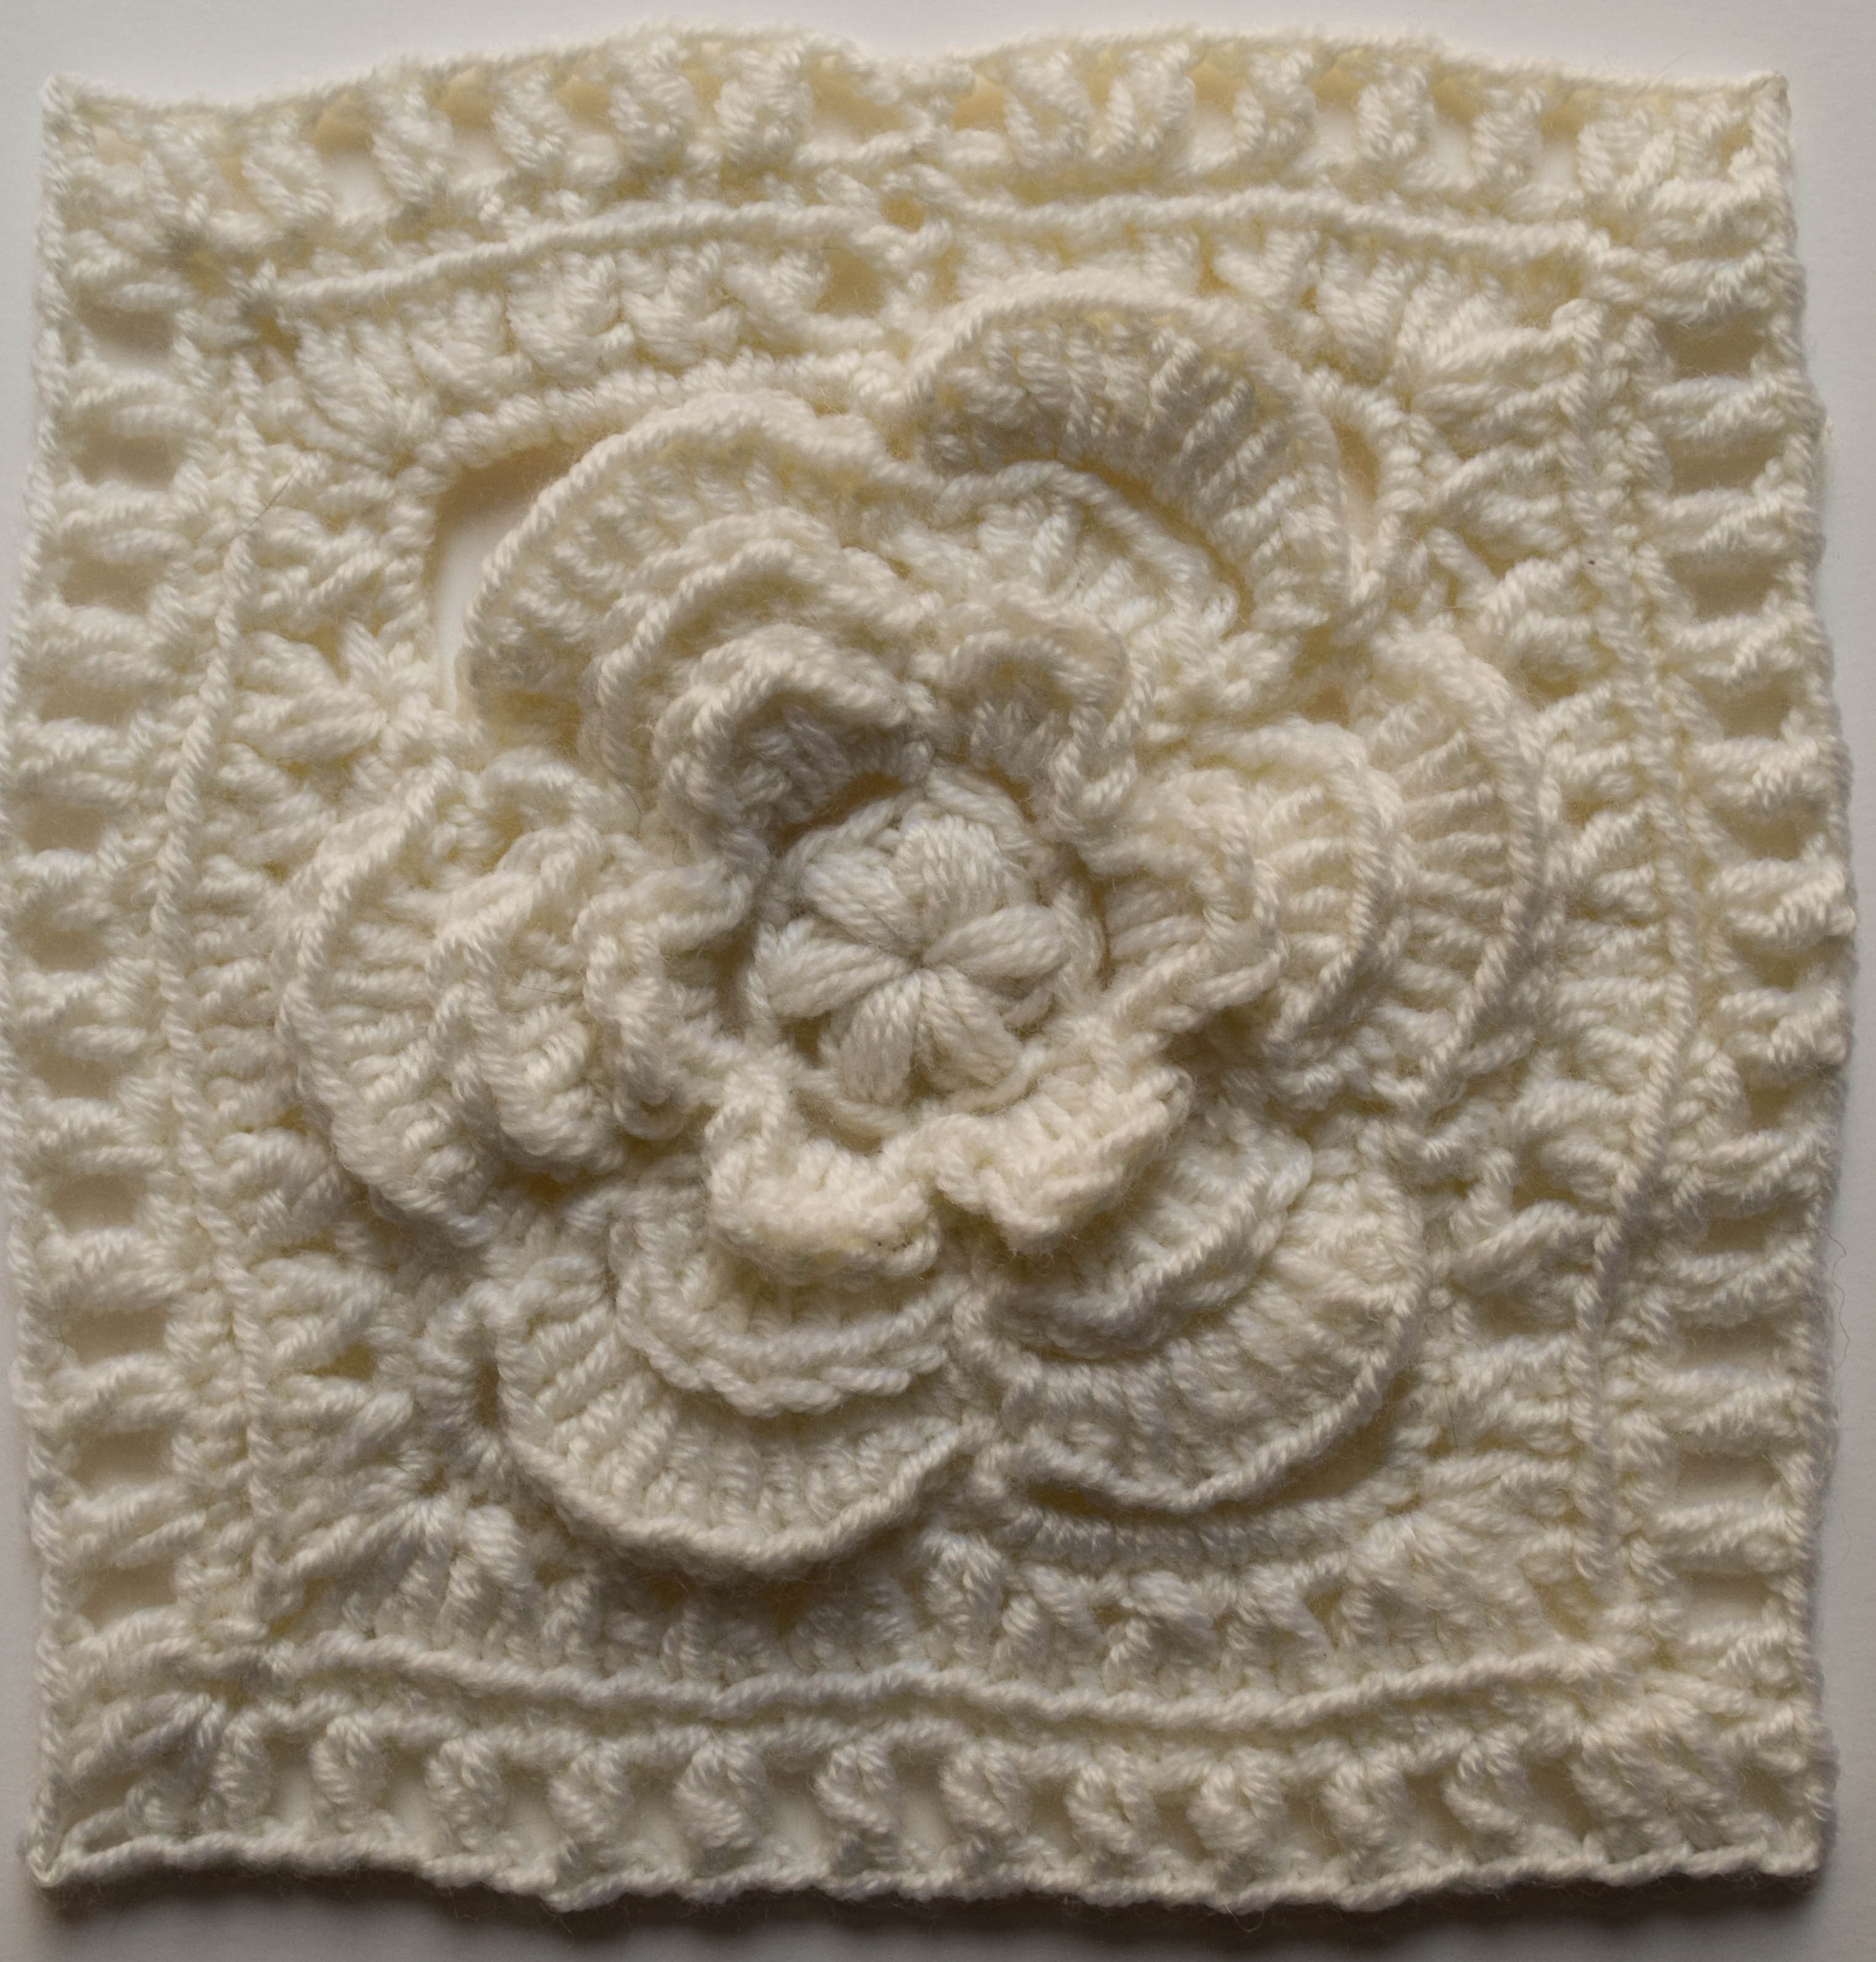 Design your own blanket using your favorite granny square patterns mayapple flower square 2 marie segares colorful granny square free crochet pattern bankloansurffo Image collections